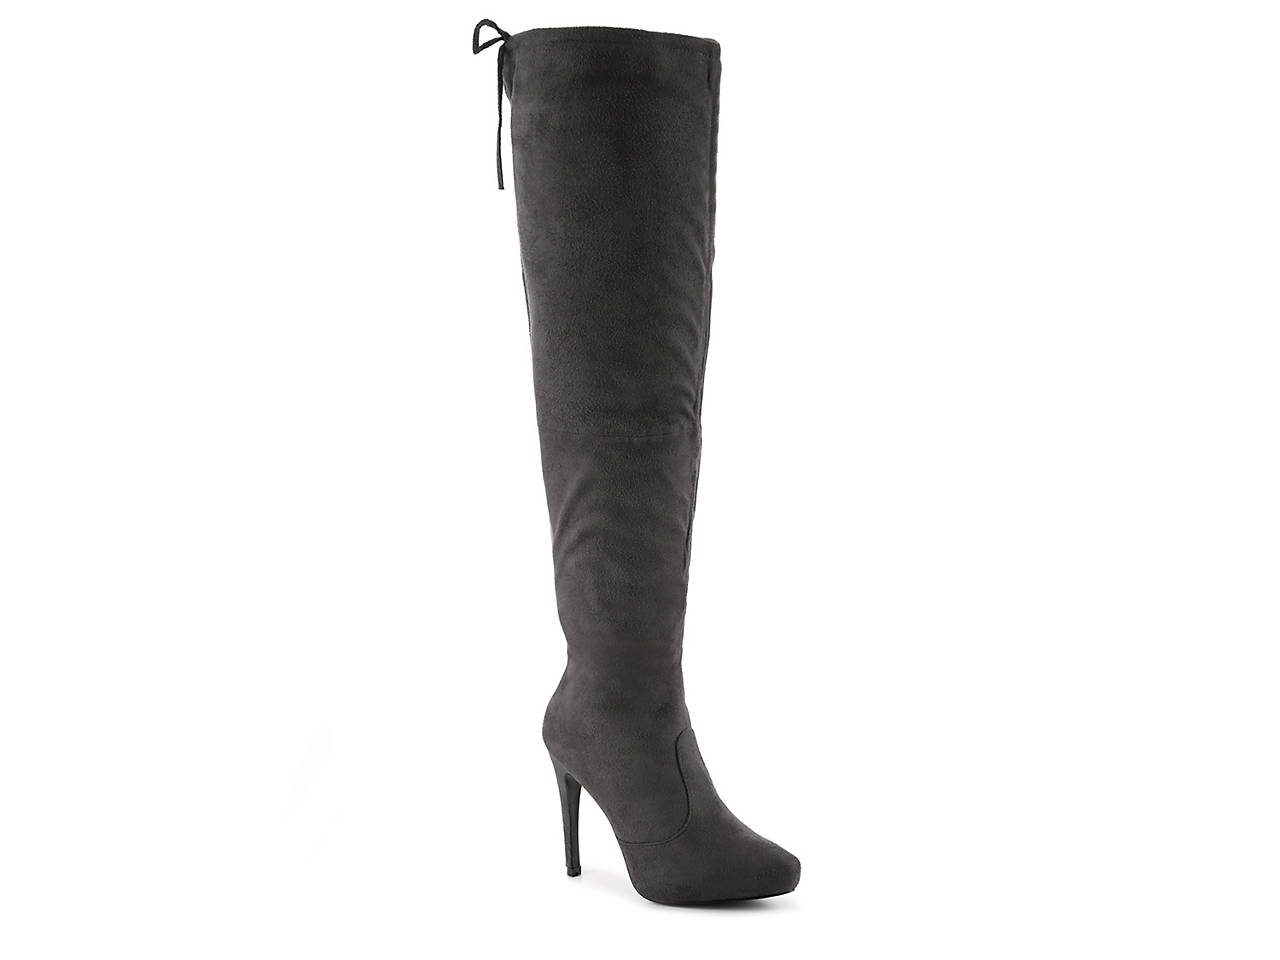 7c9eaa7c67a Journee Collection Magic Wide Calf Over The Knee Boot Women s Shoes ...